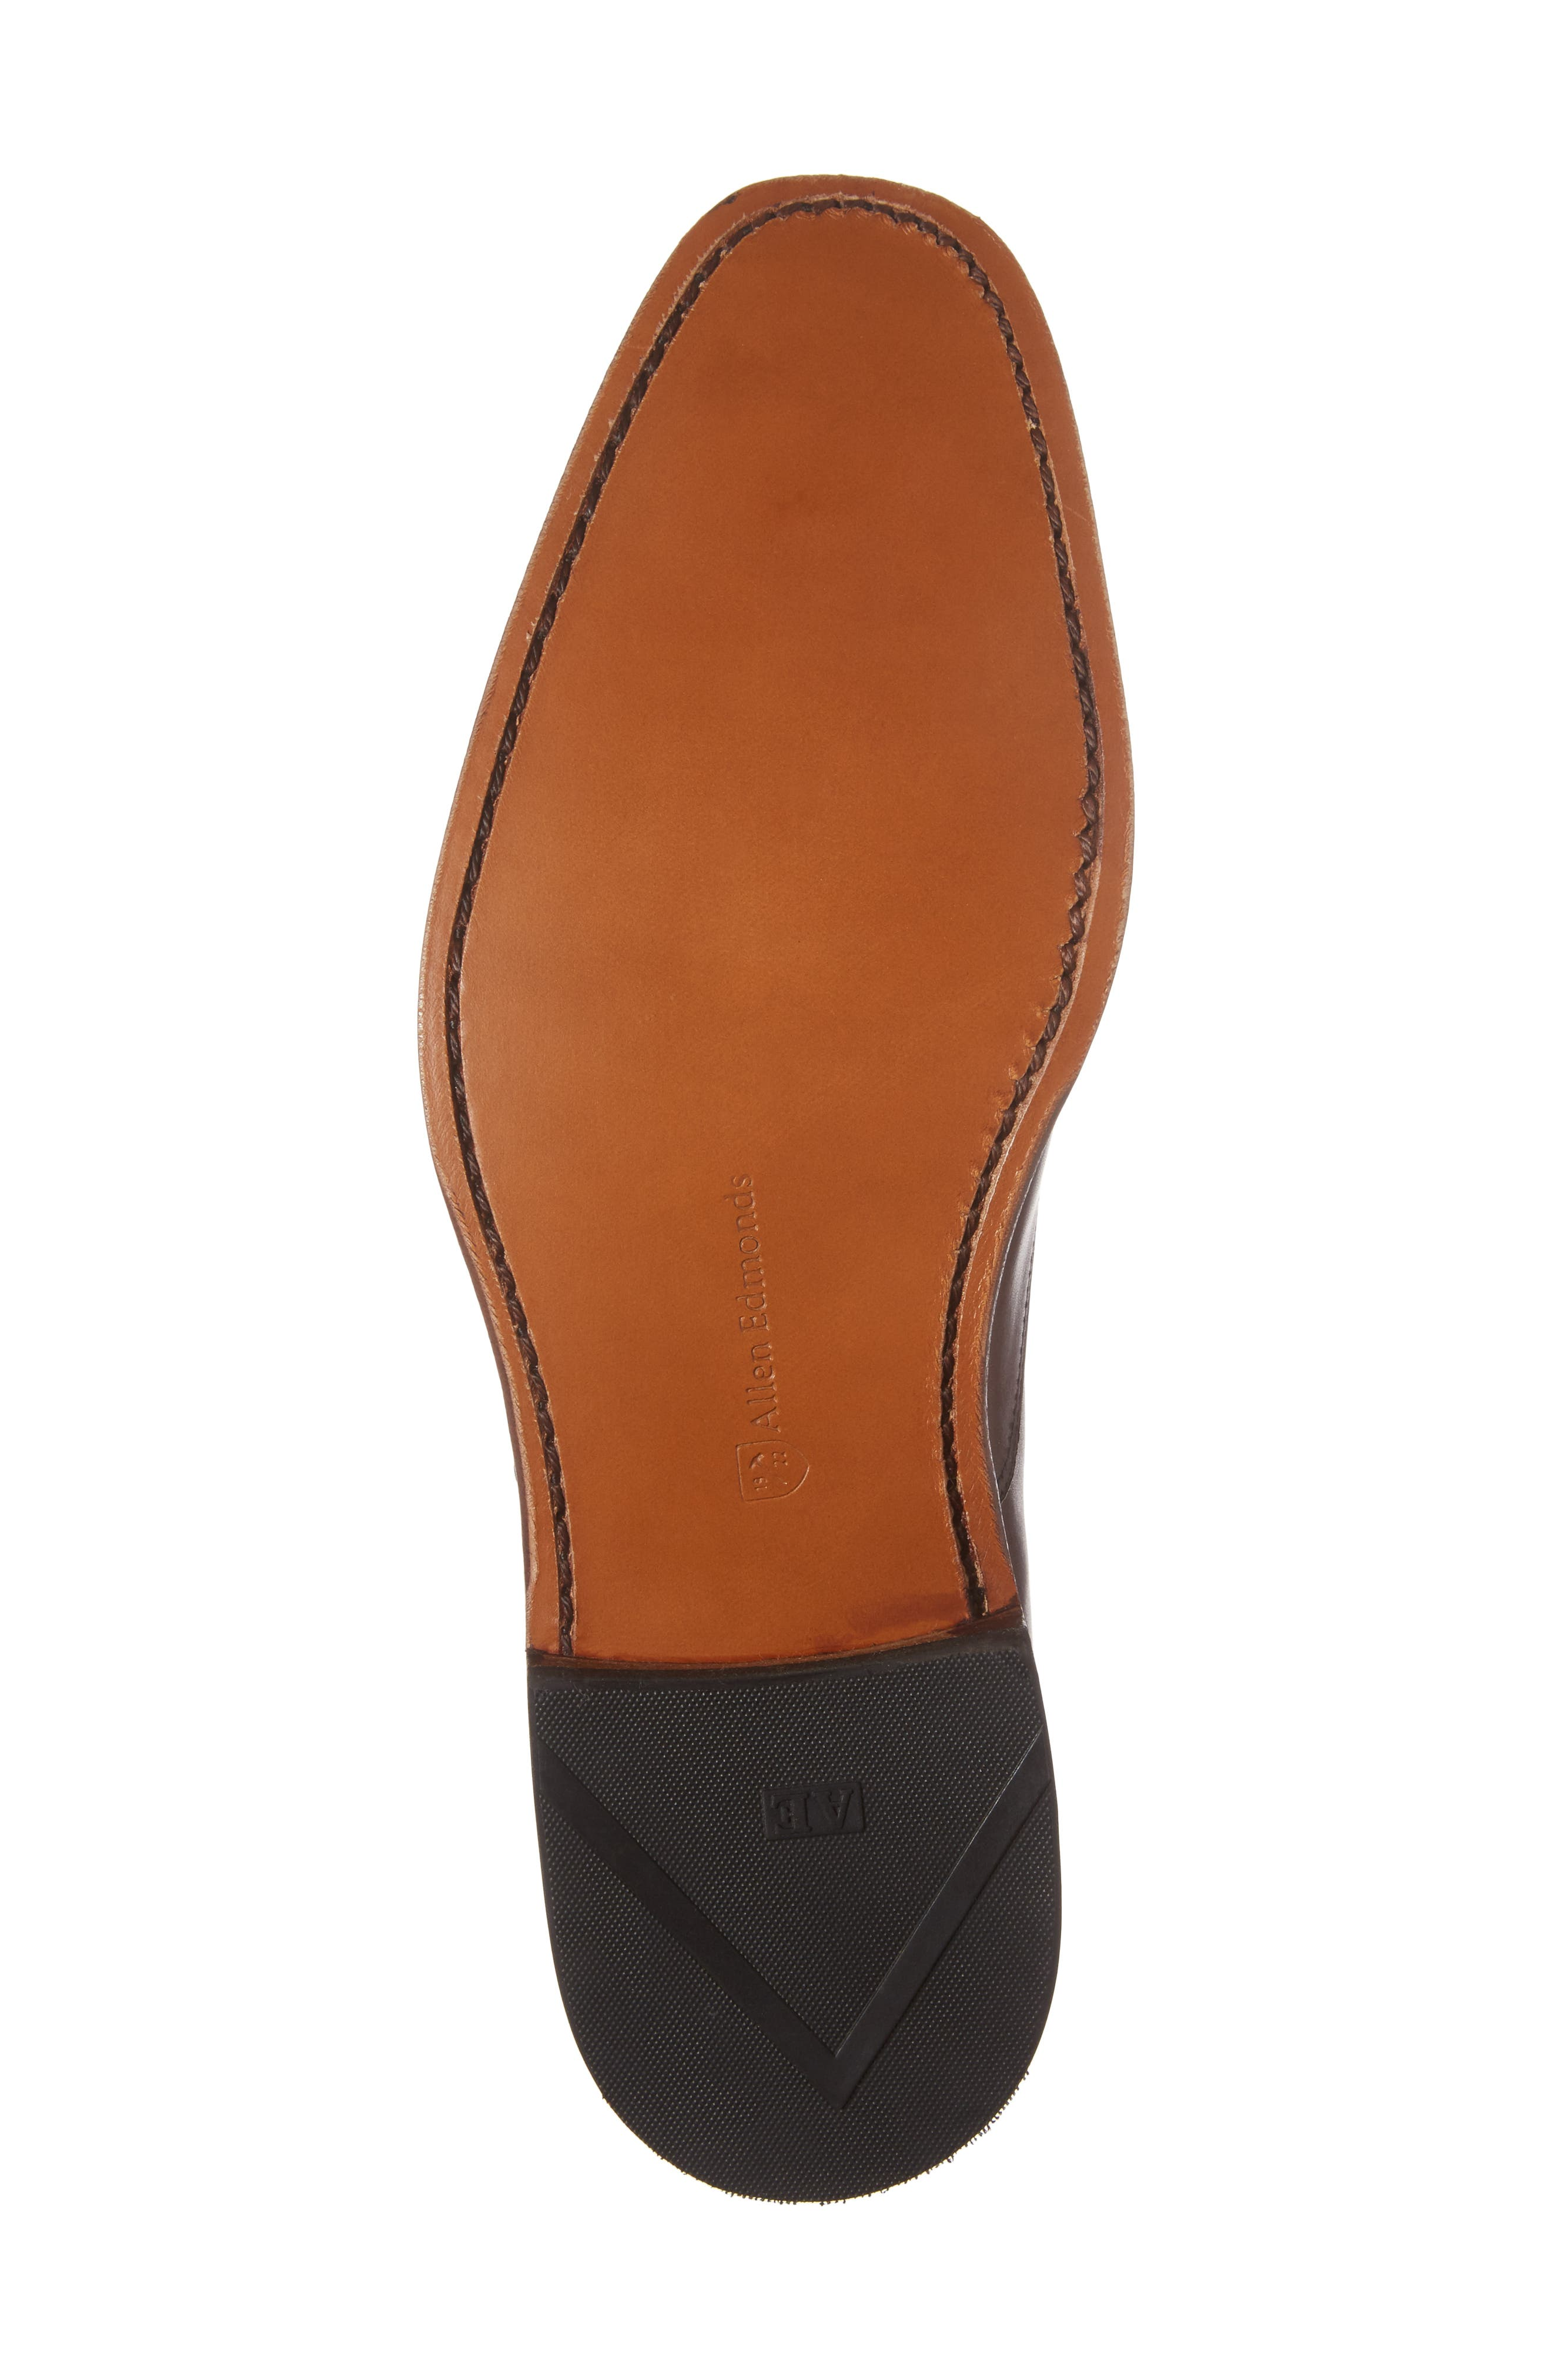 'Exchange Place' Cap Toe Oxford,                             Alternate thumbnail 6, color,                             Dark Chili Leather